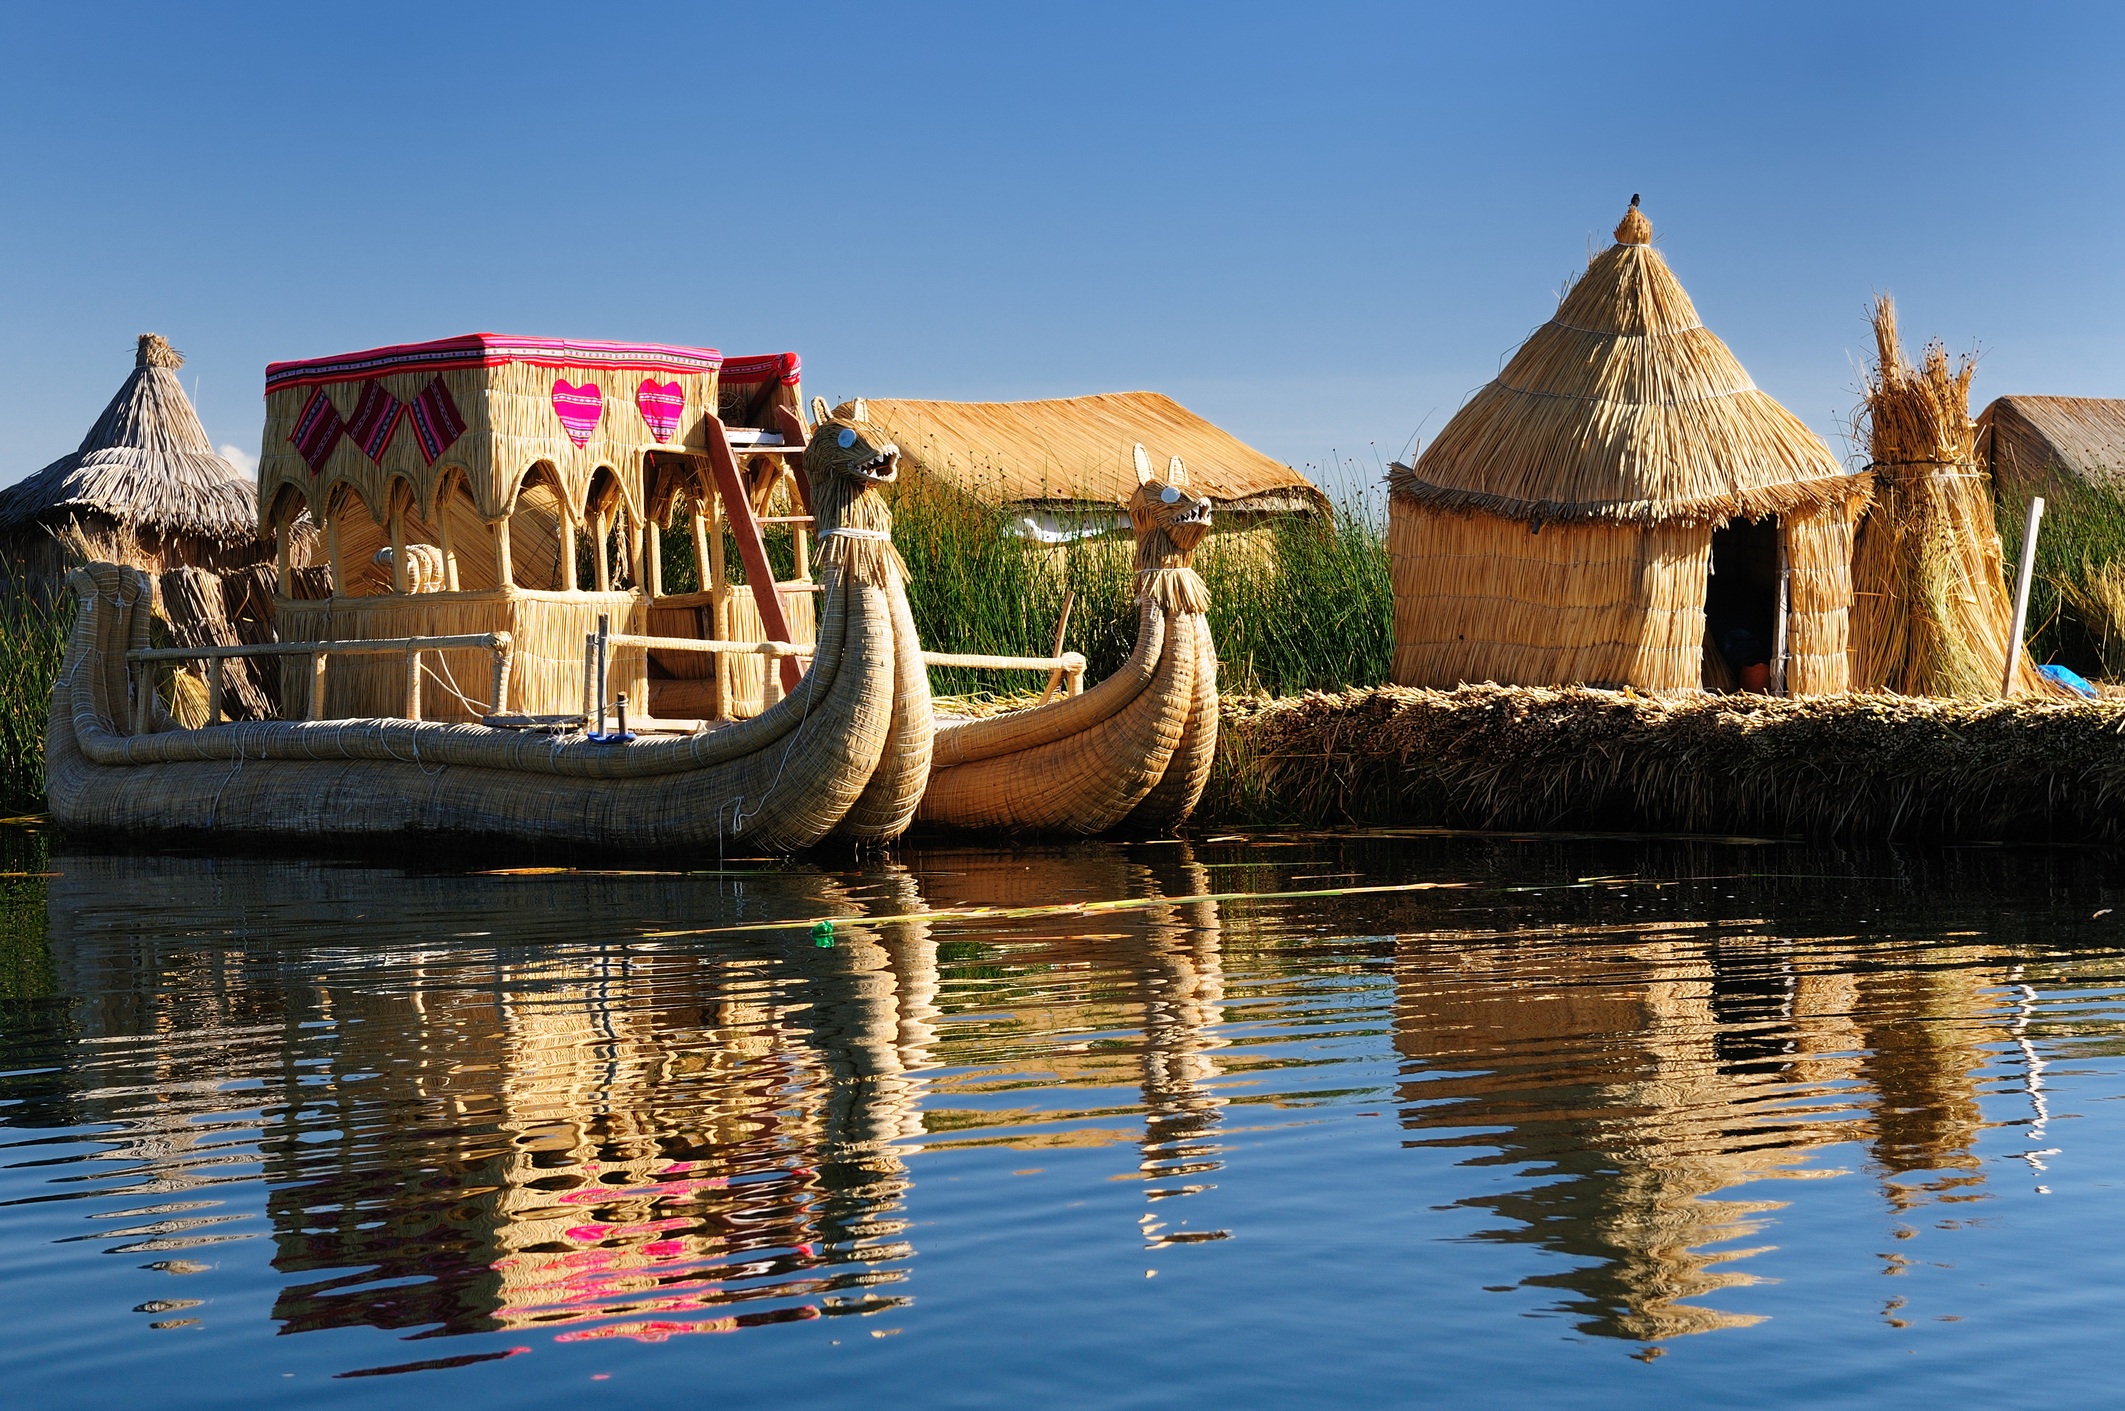 The floating islands of Lake Titicaca